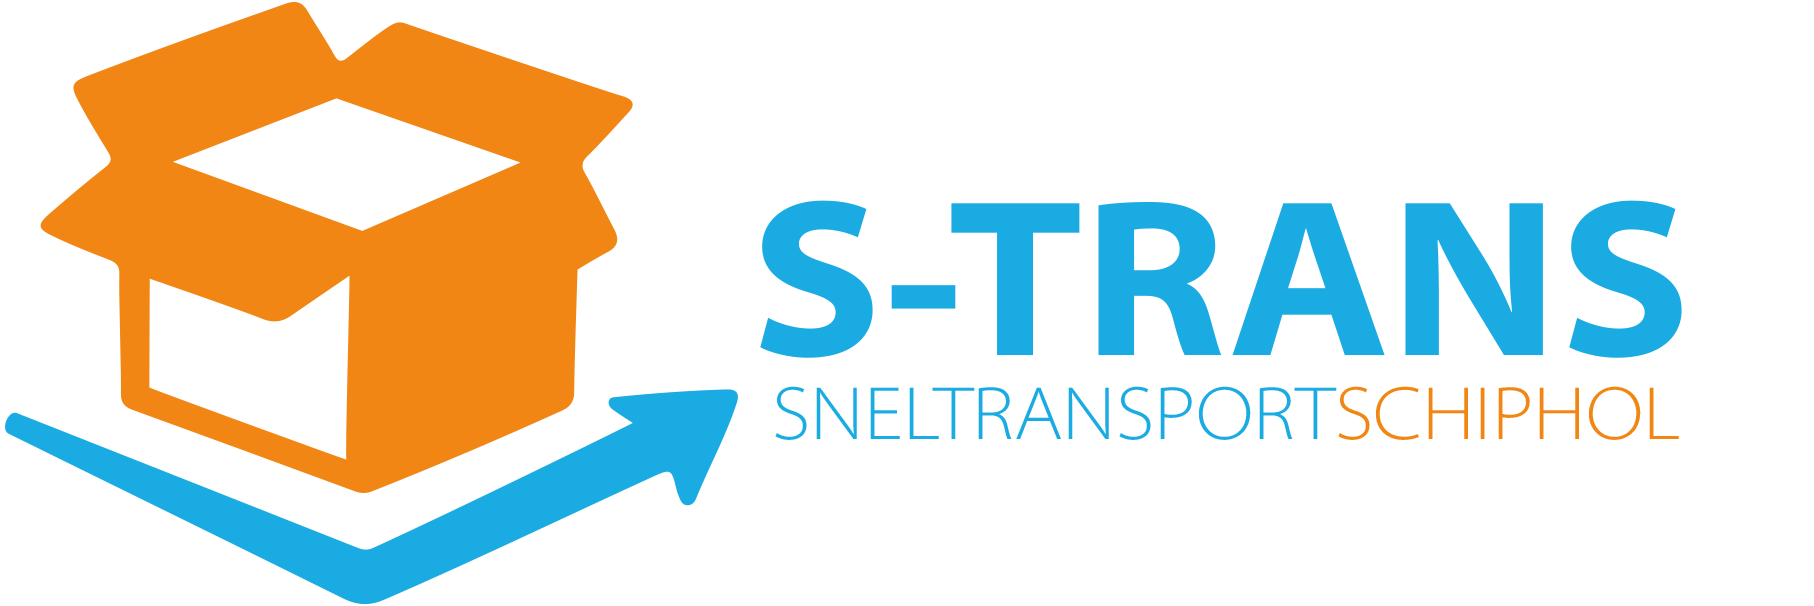 S-Trans Sneltransport |